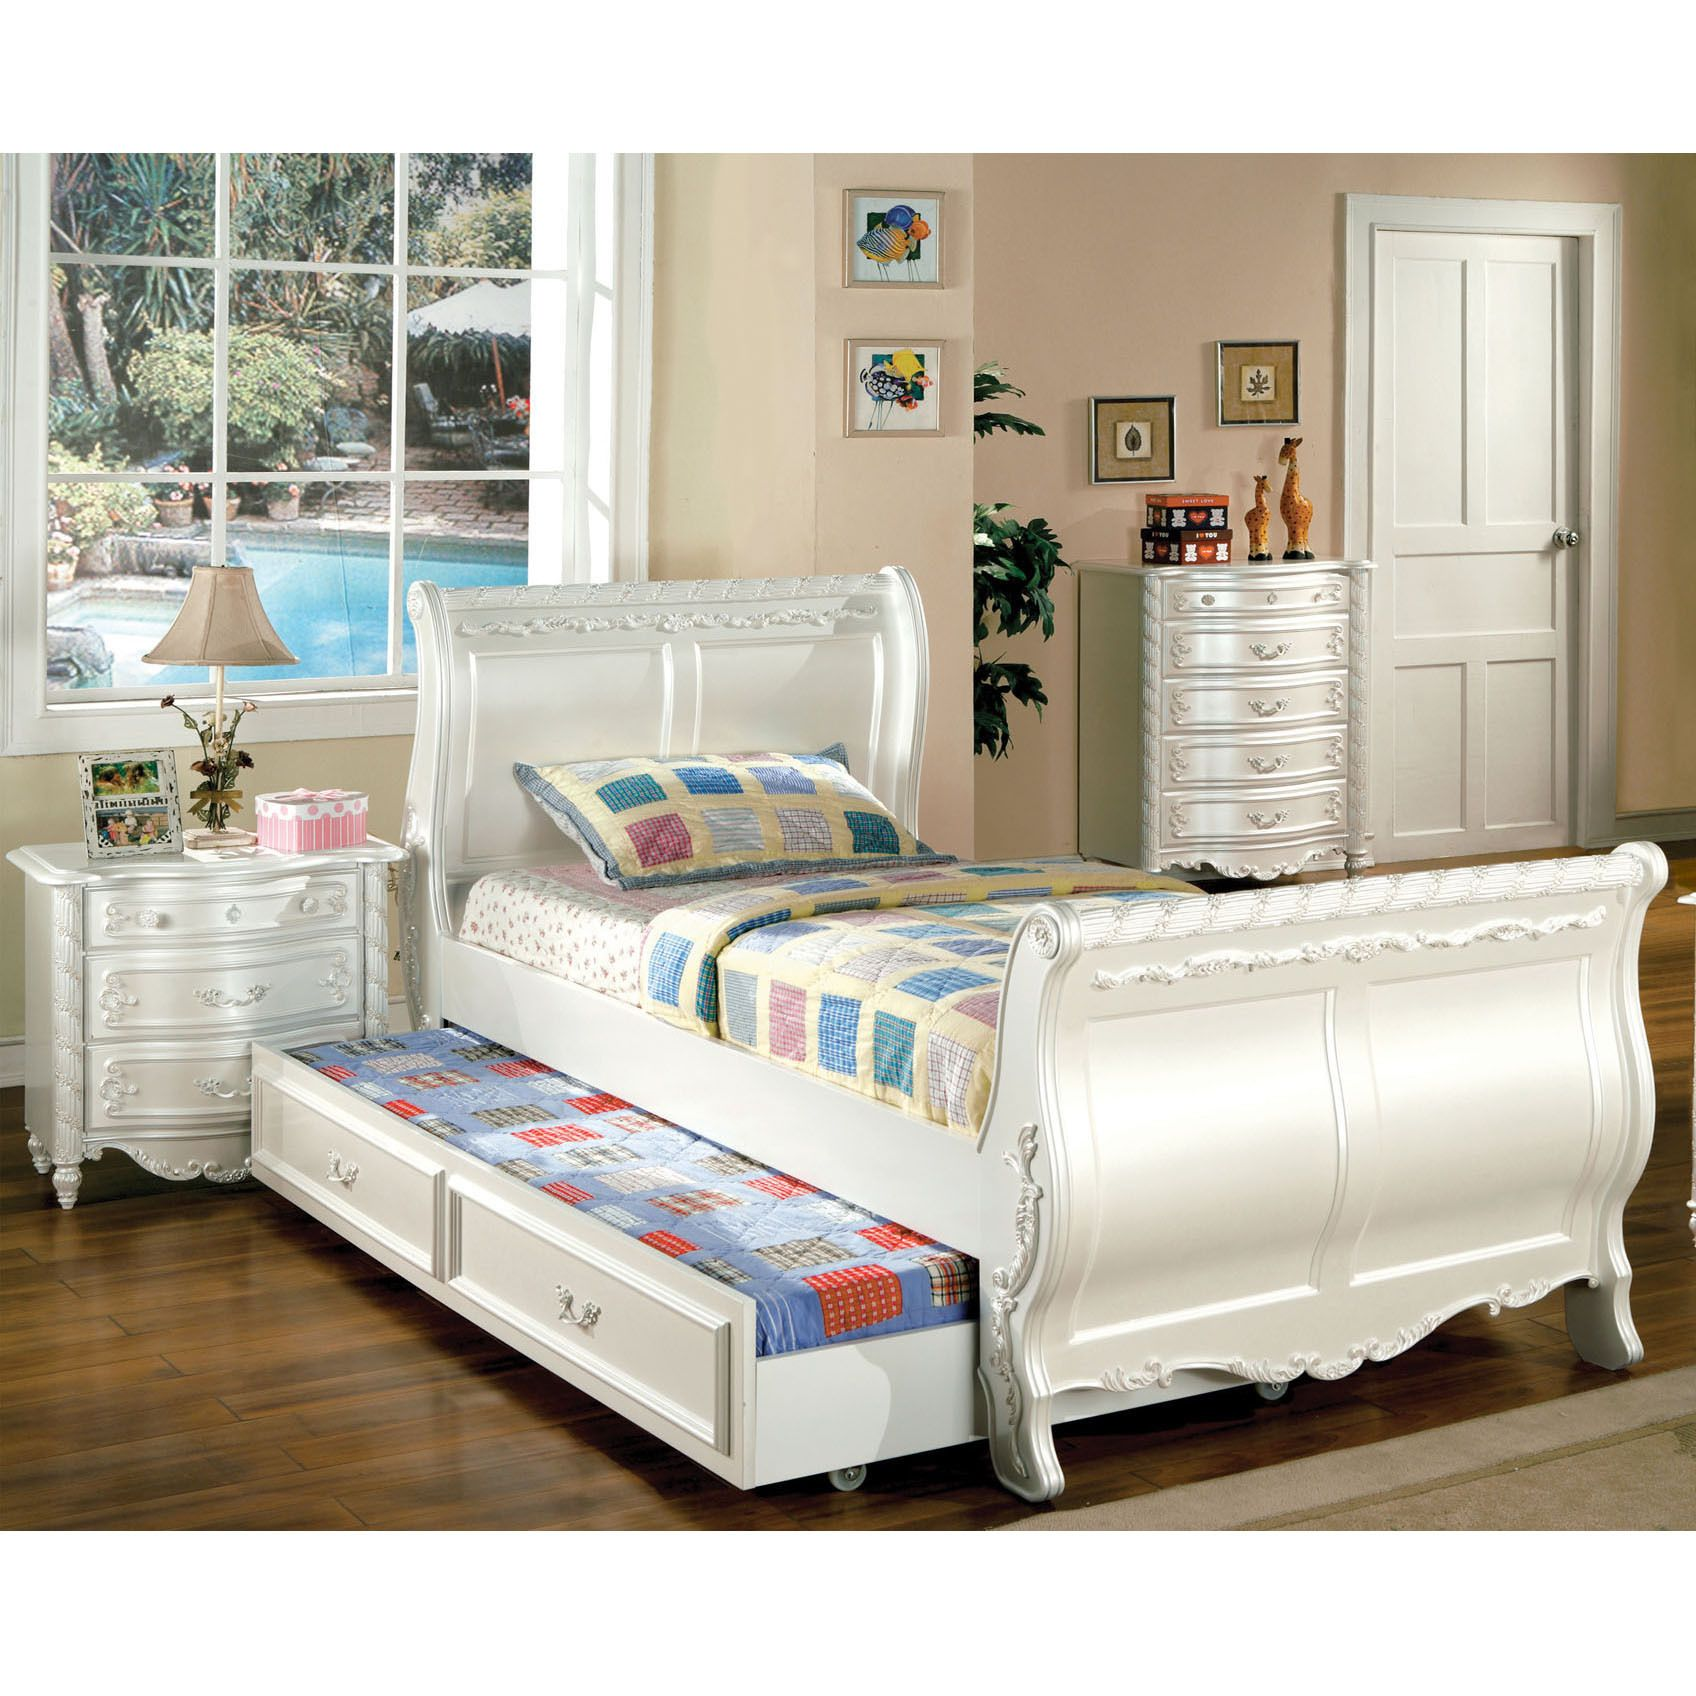 Luminate your young child\'s bedroom with this intricately designed ...